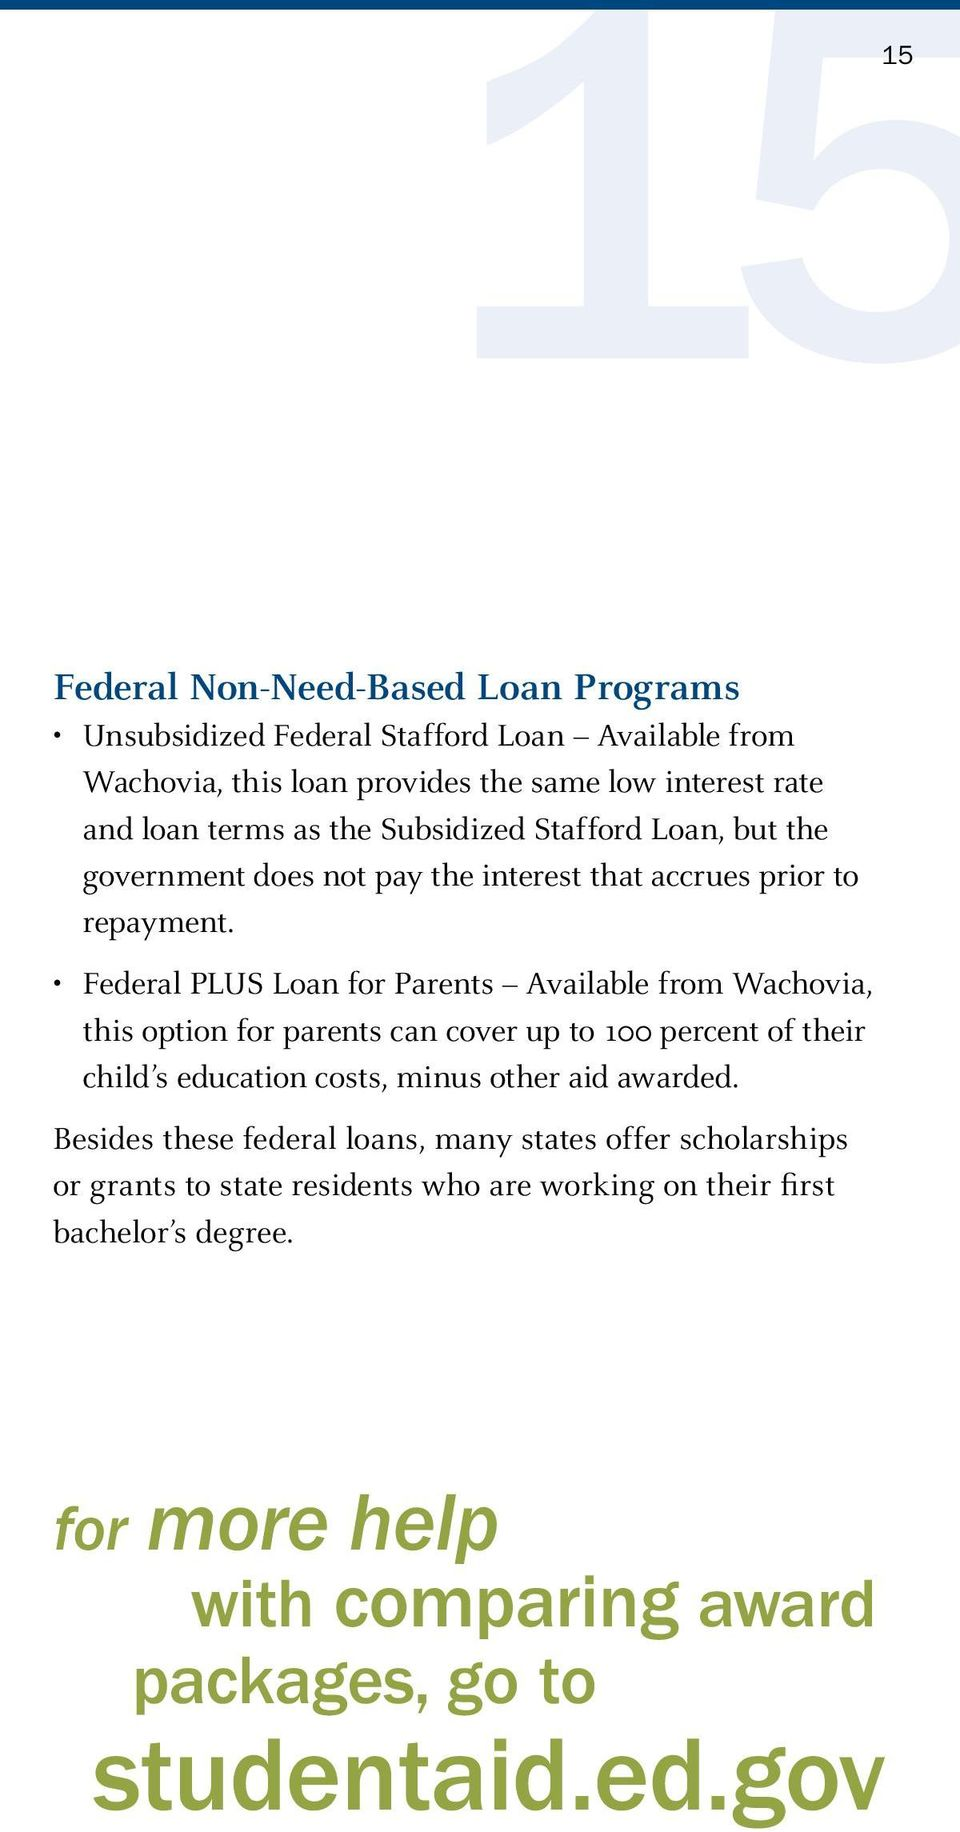 Federal PLUS Loan for Parents Available from Wachovia, this option for parents can cover up to 100 percent of their child s education costs, minus other aid